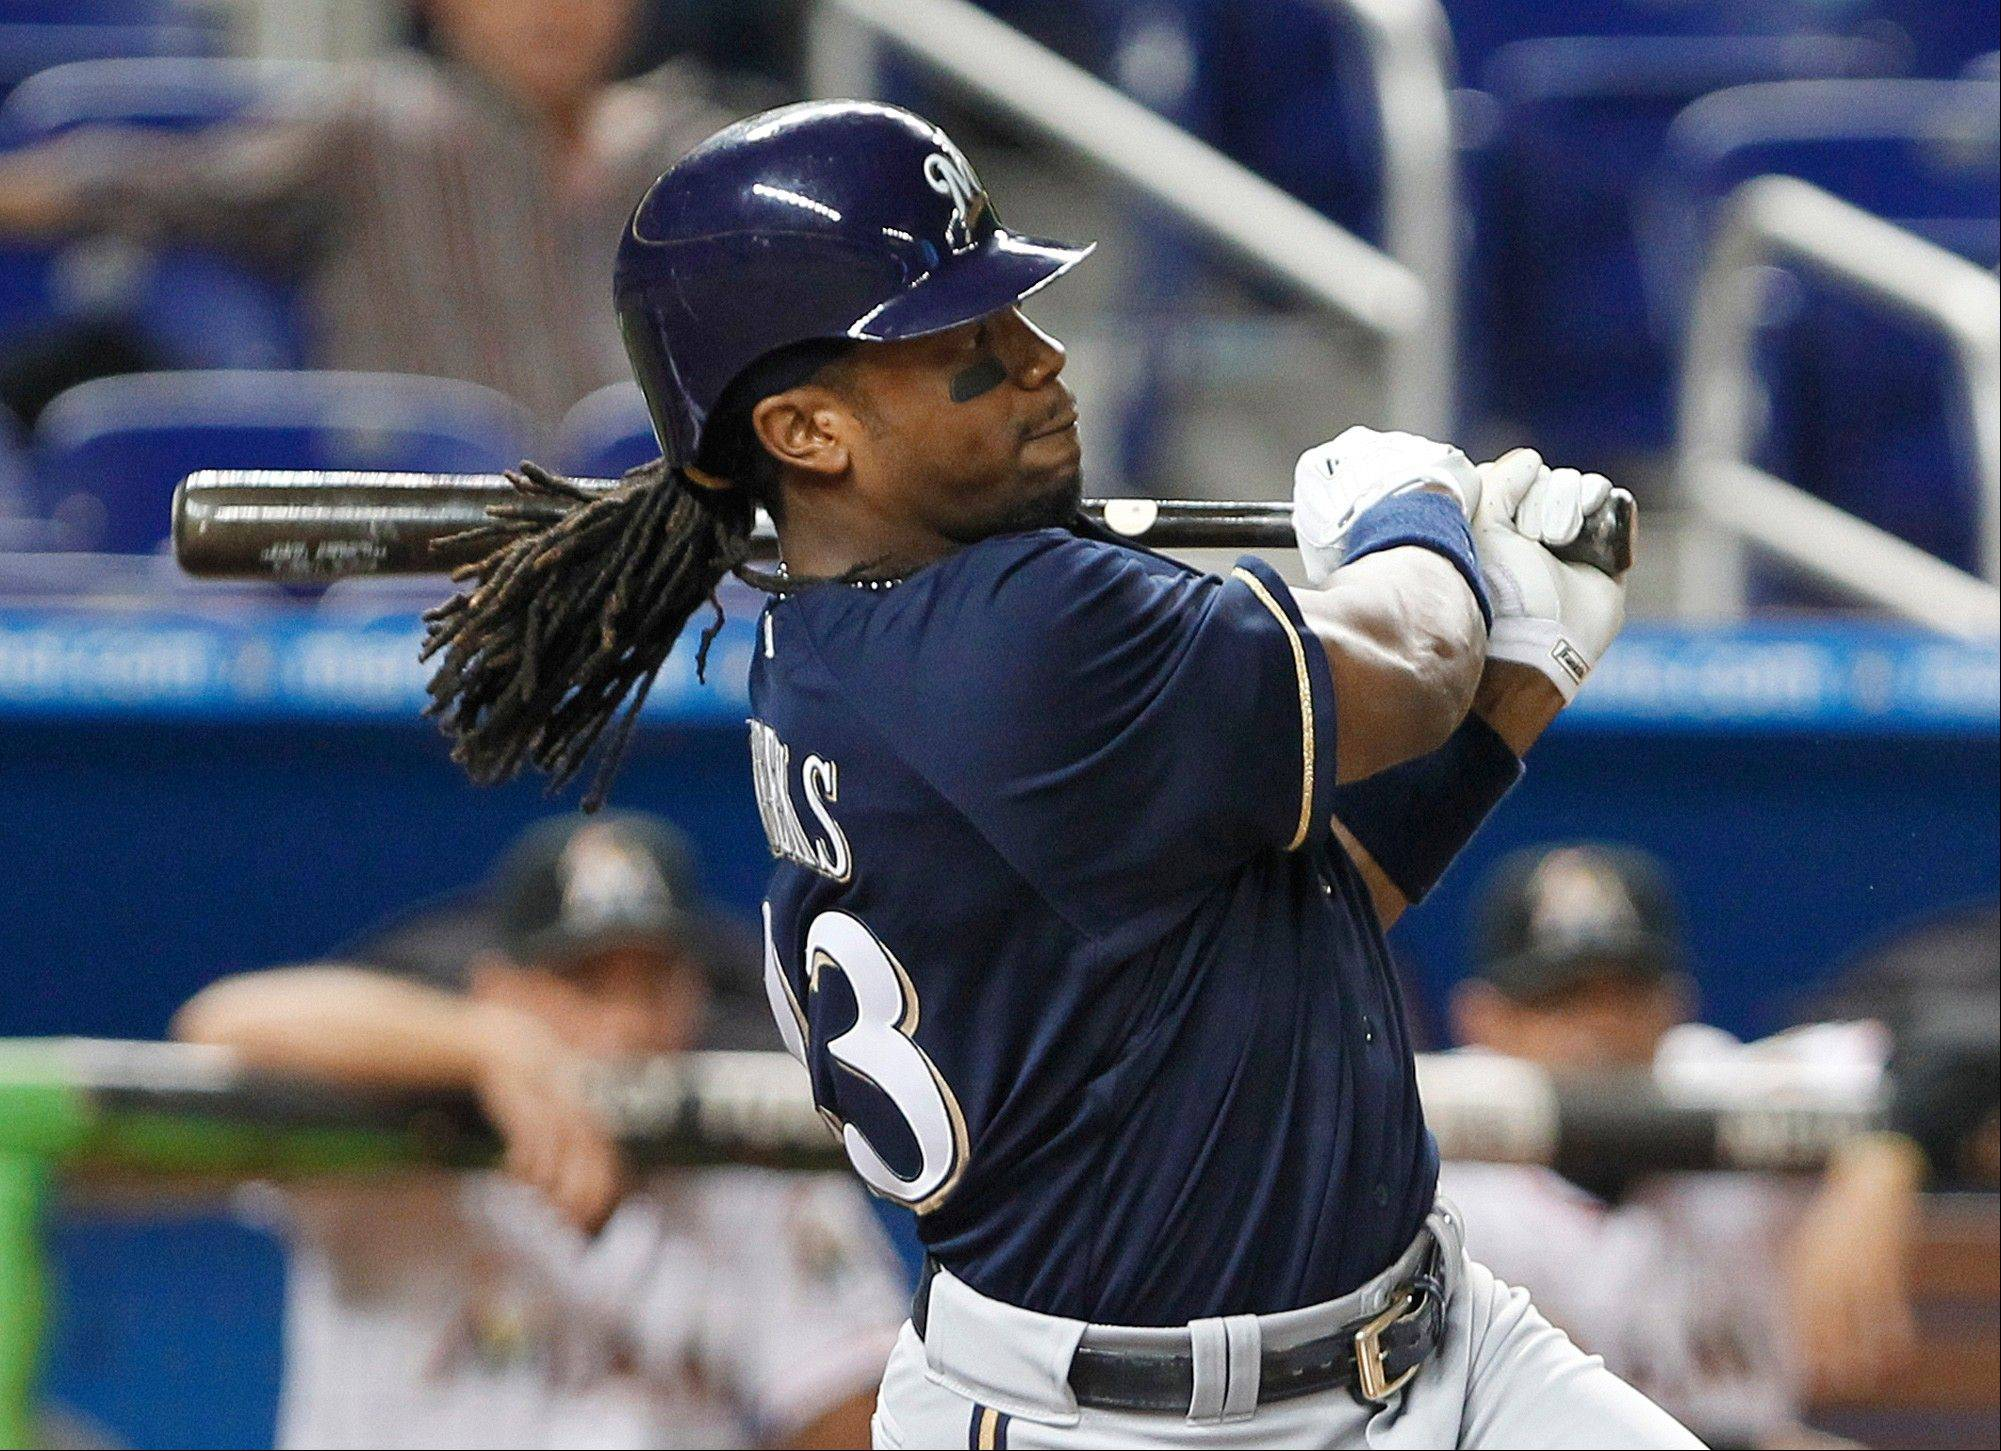 The Brewers' Rickie Weeks watches his two-run home run during the third inning Wednesday in Miami.